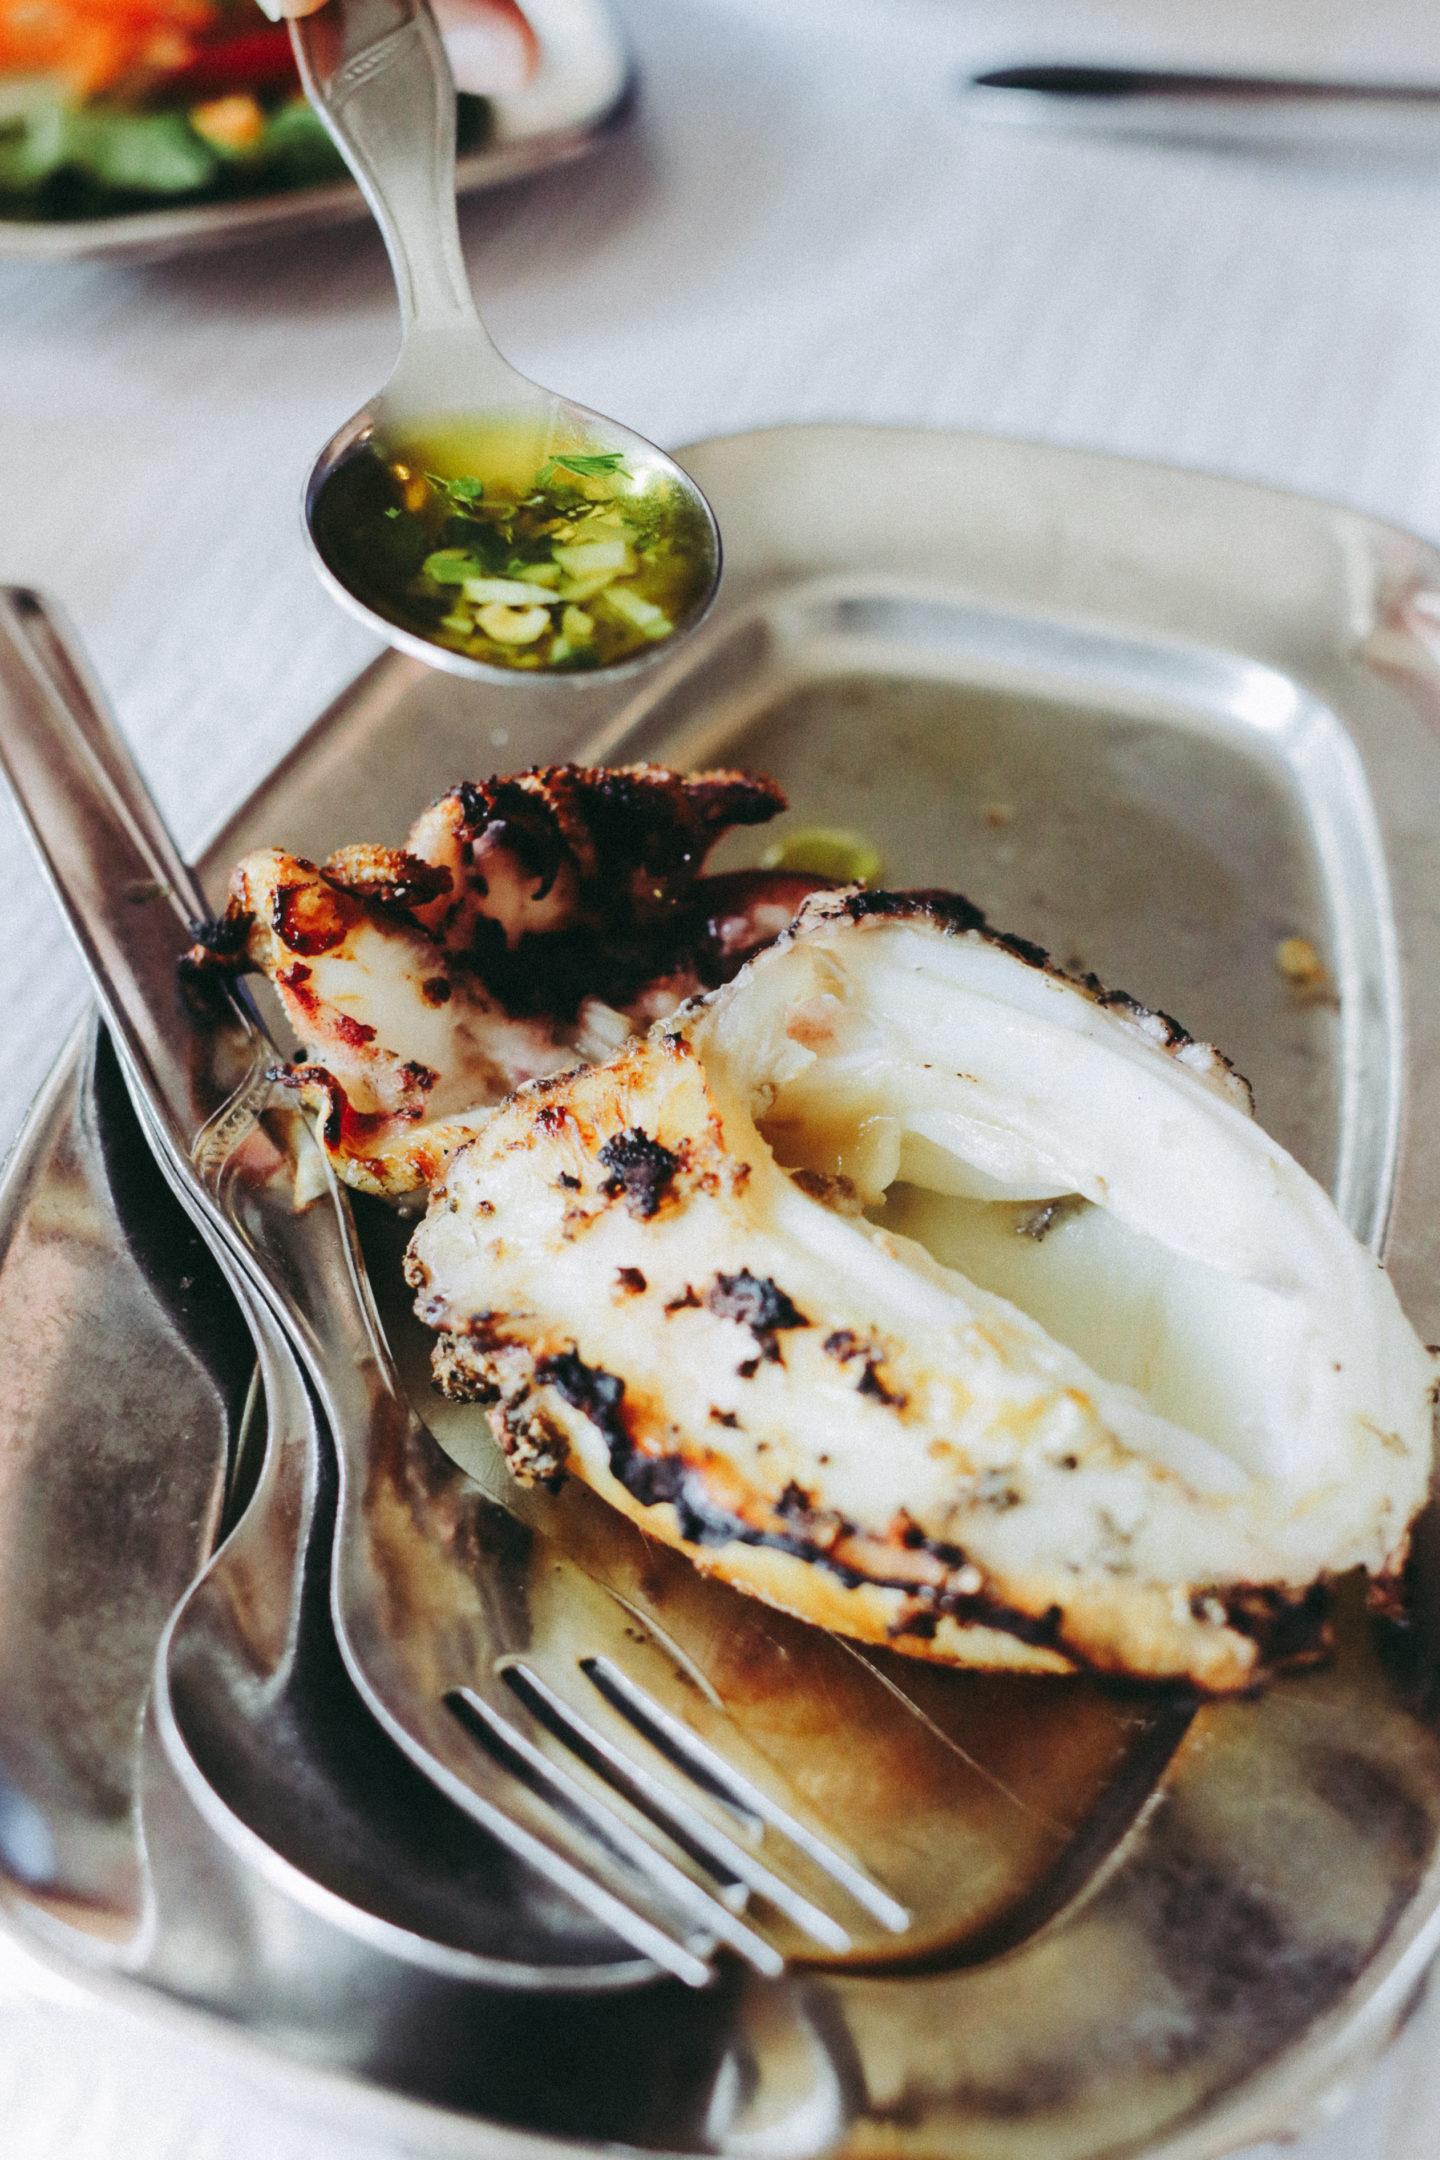 Top 4 Places To Eat in Cascais, Portugal - Grilled Cuttlefish at O Carloto tasca - by thecasualfree.com